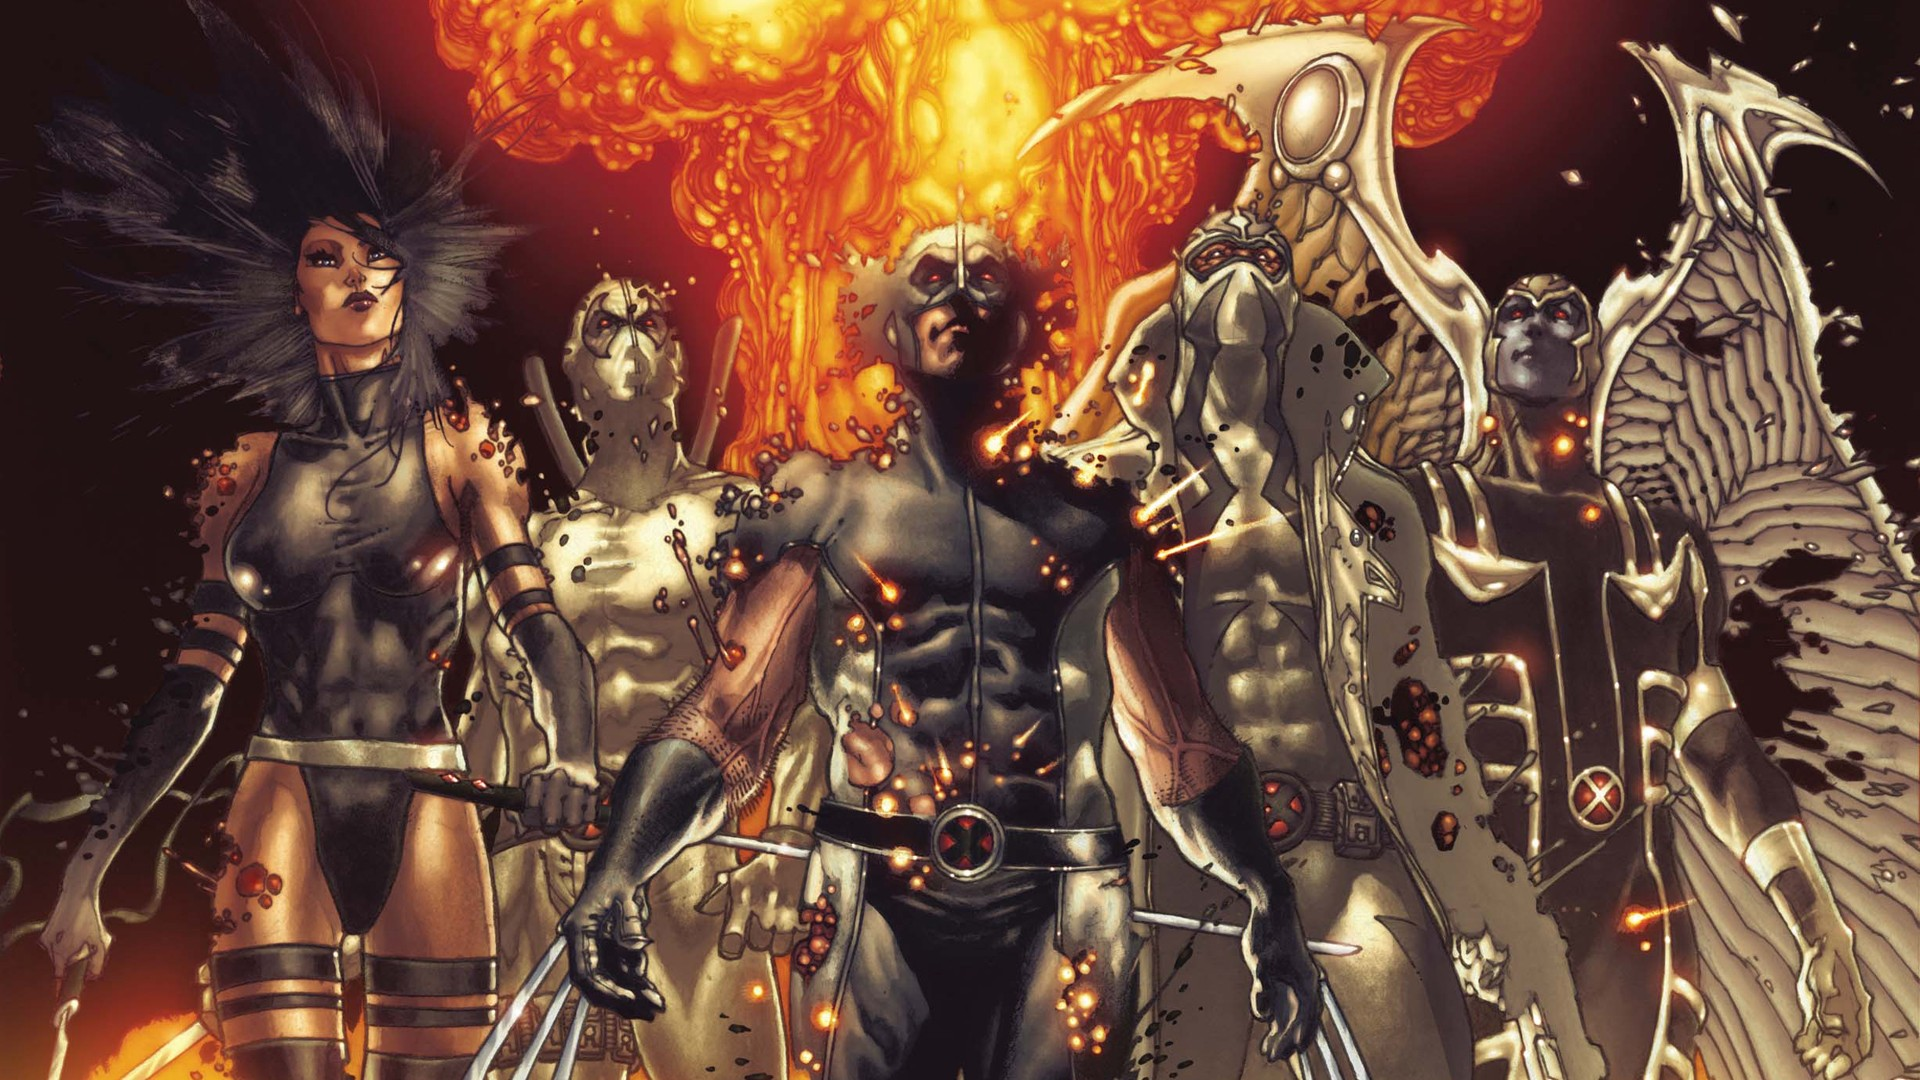 Uncanny X Men Hd: 1 Fear Itself: Uncanny X-Force HD Wallpapers